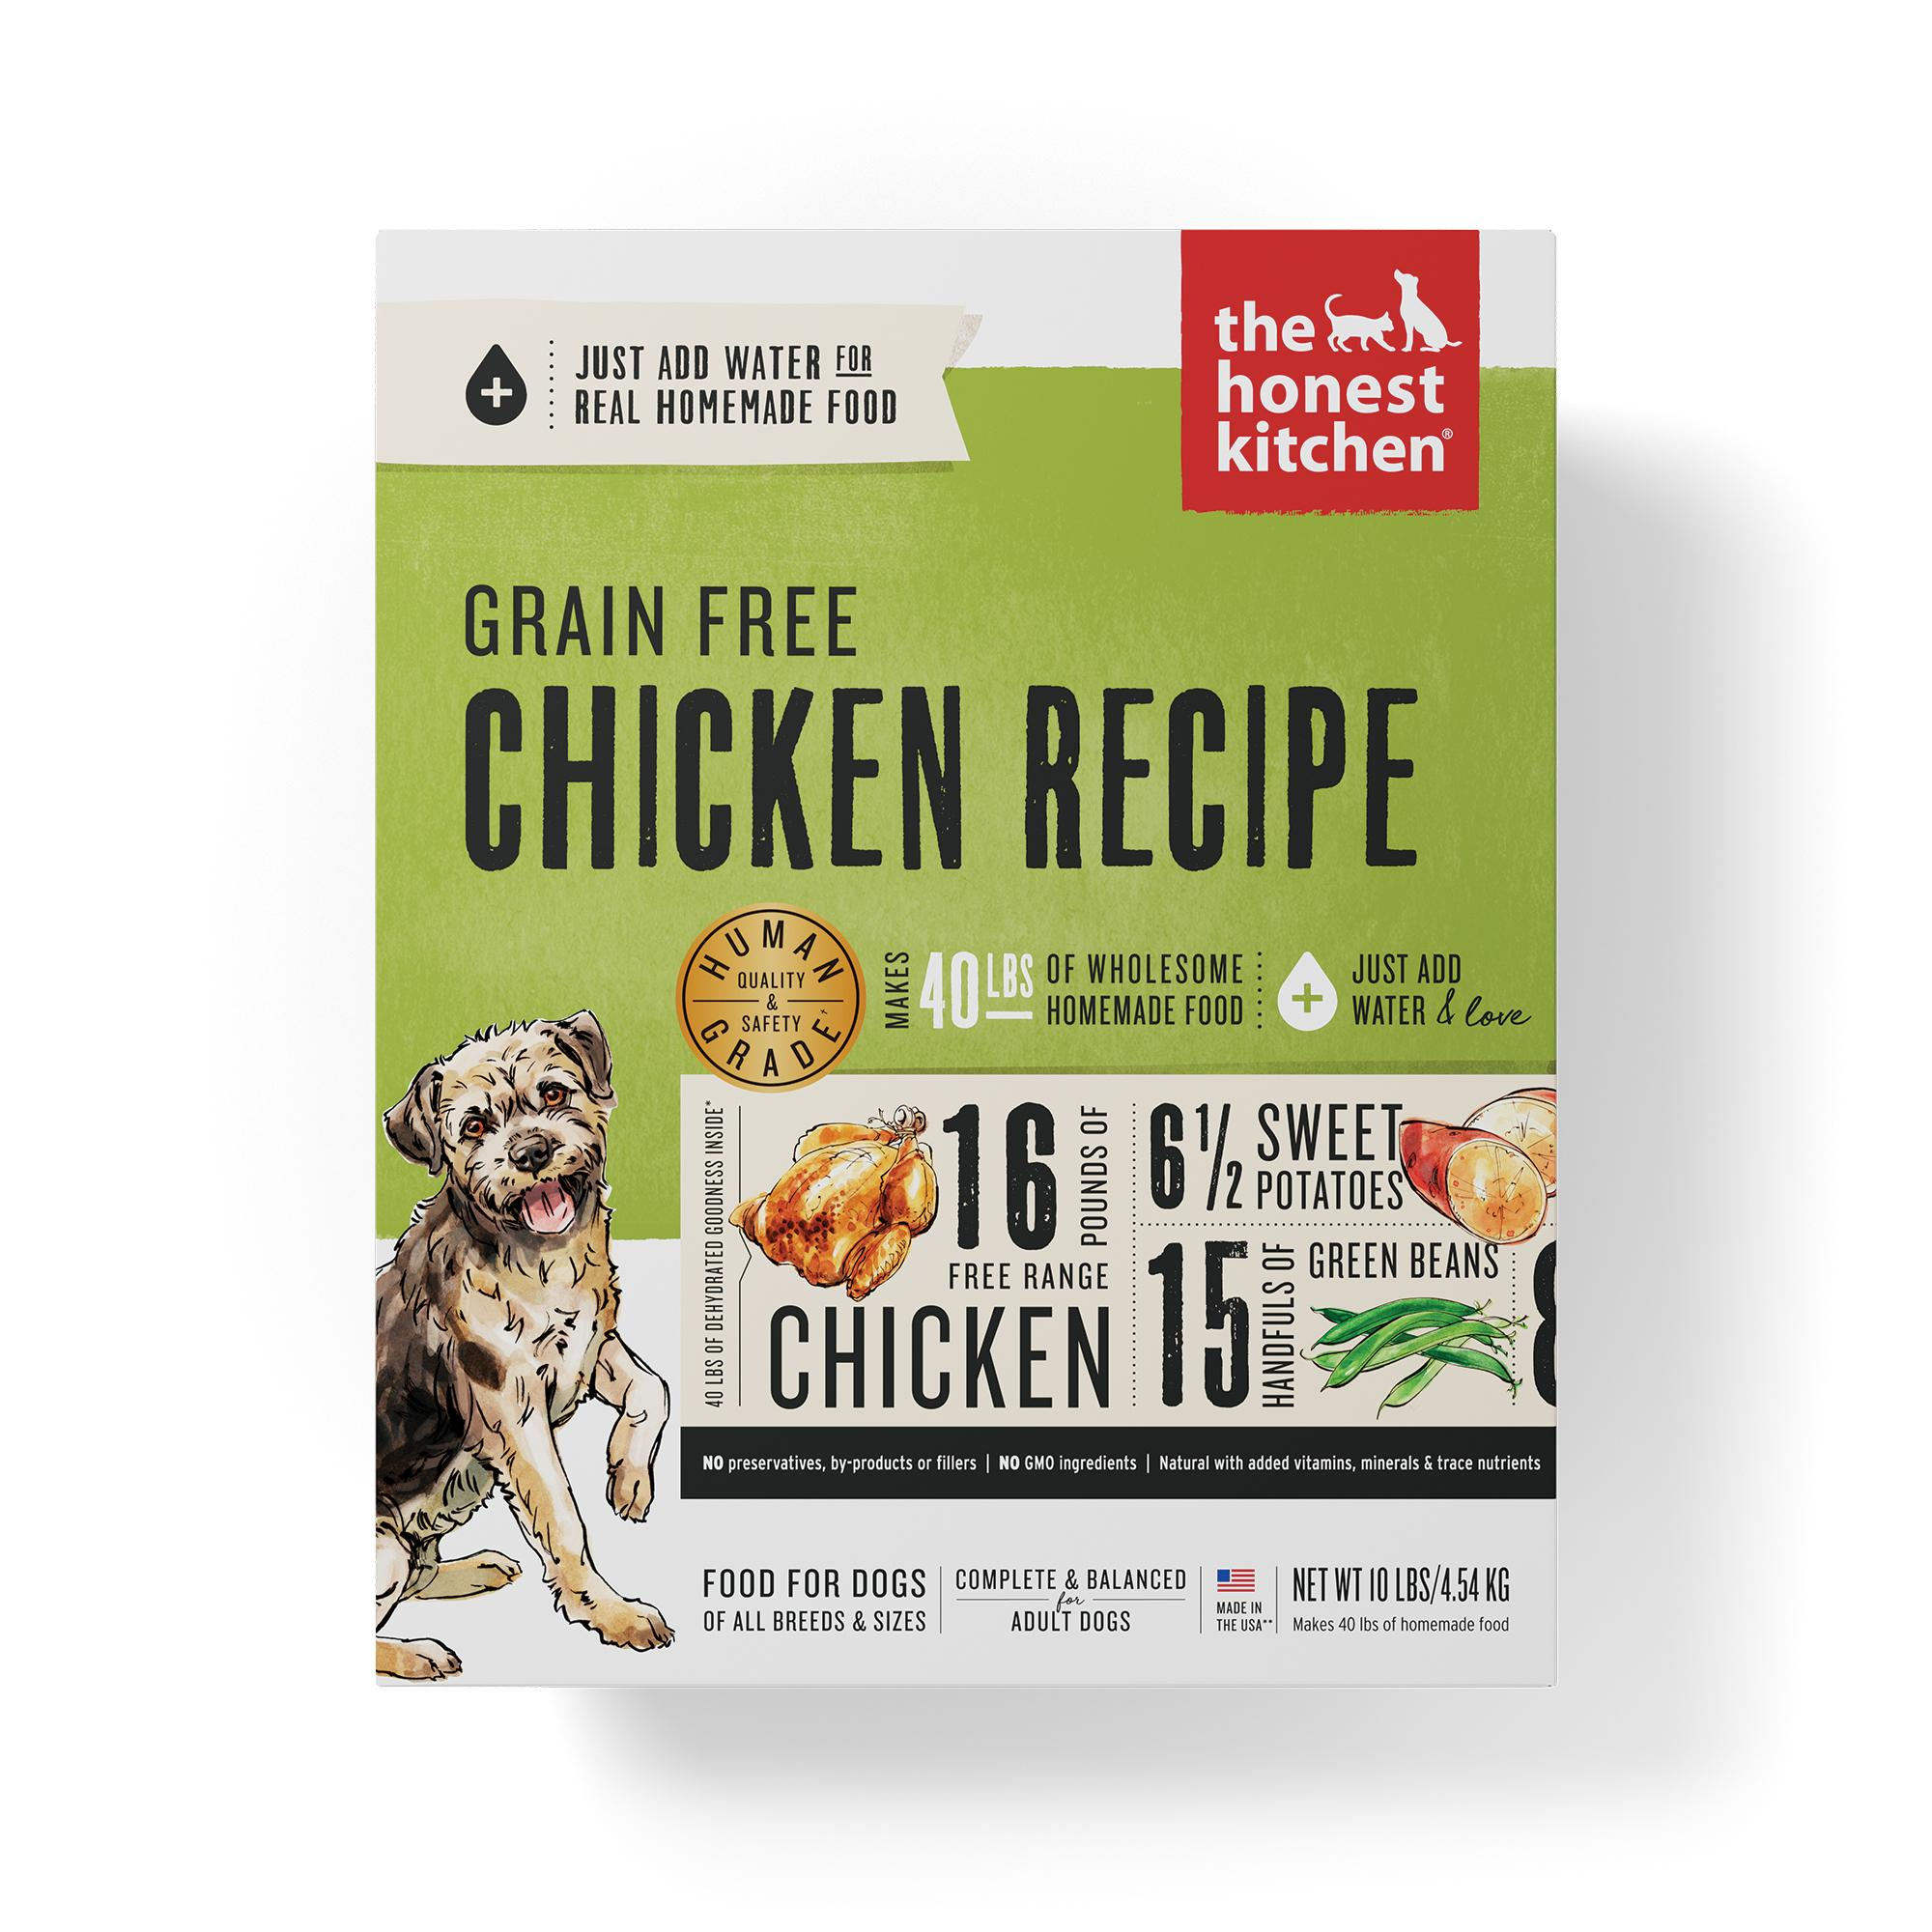 The Honest Kitchen Chicken Recipe Grain-Free Dehydrated Dog Food, 10-lb box